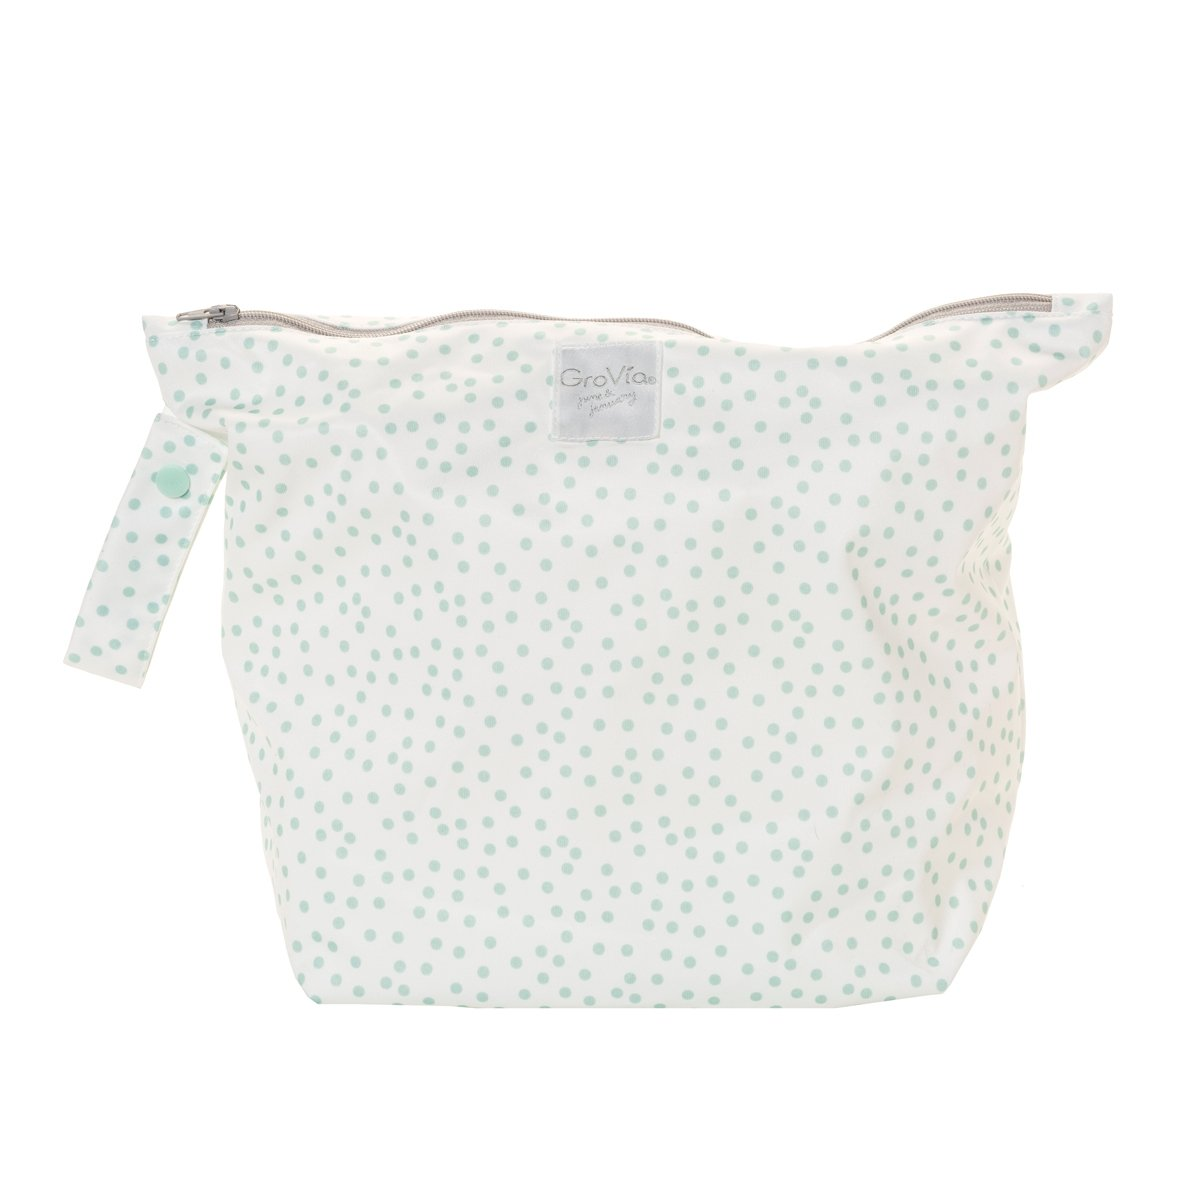 GroVia zipped wet bag - Soft Mint Dot